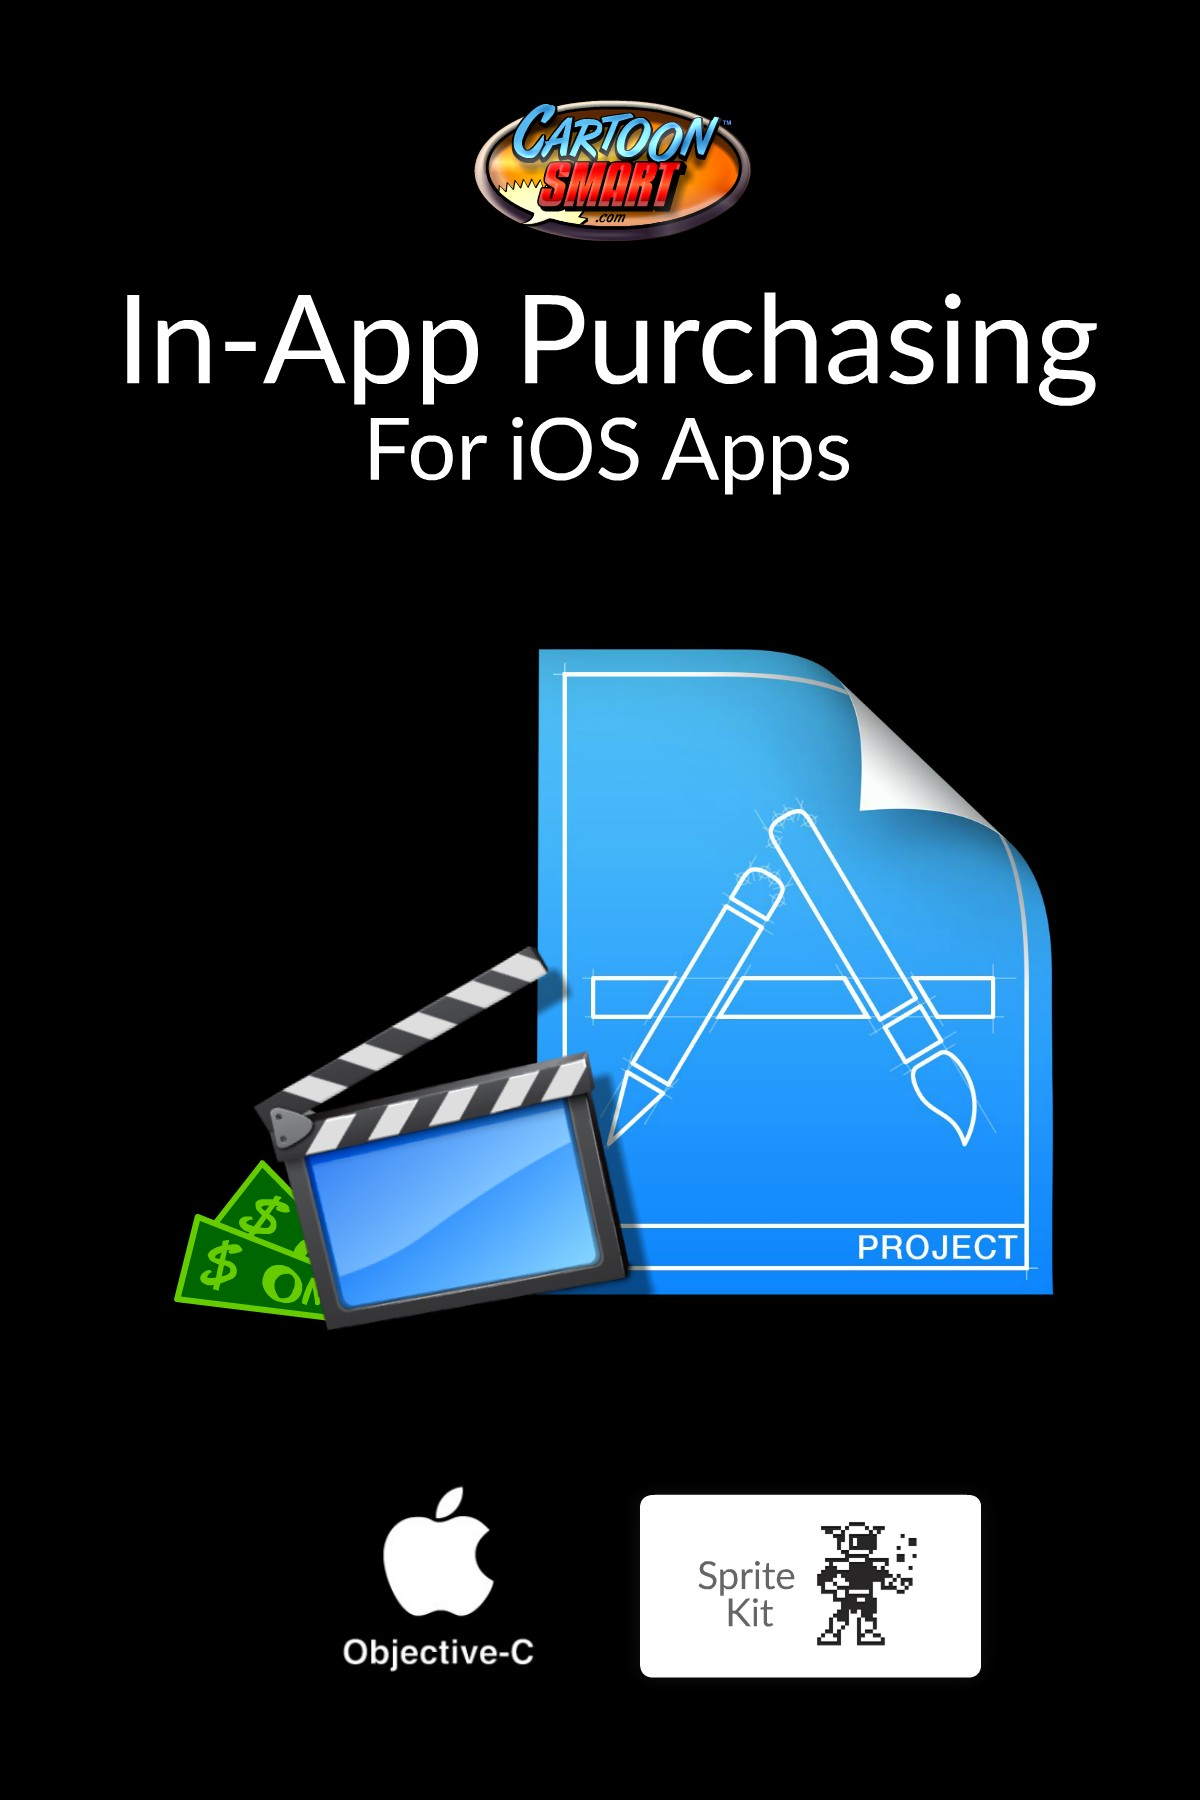 In-App Purchasing for iOS Apps - Video Tutorials